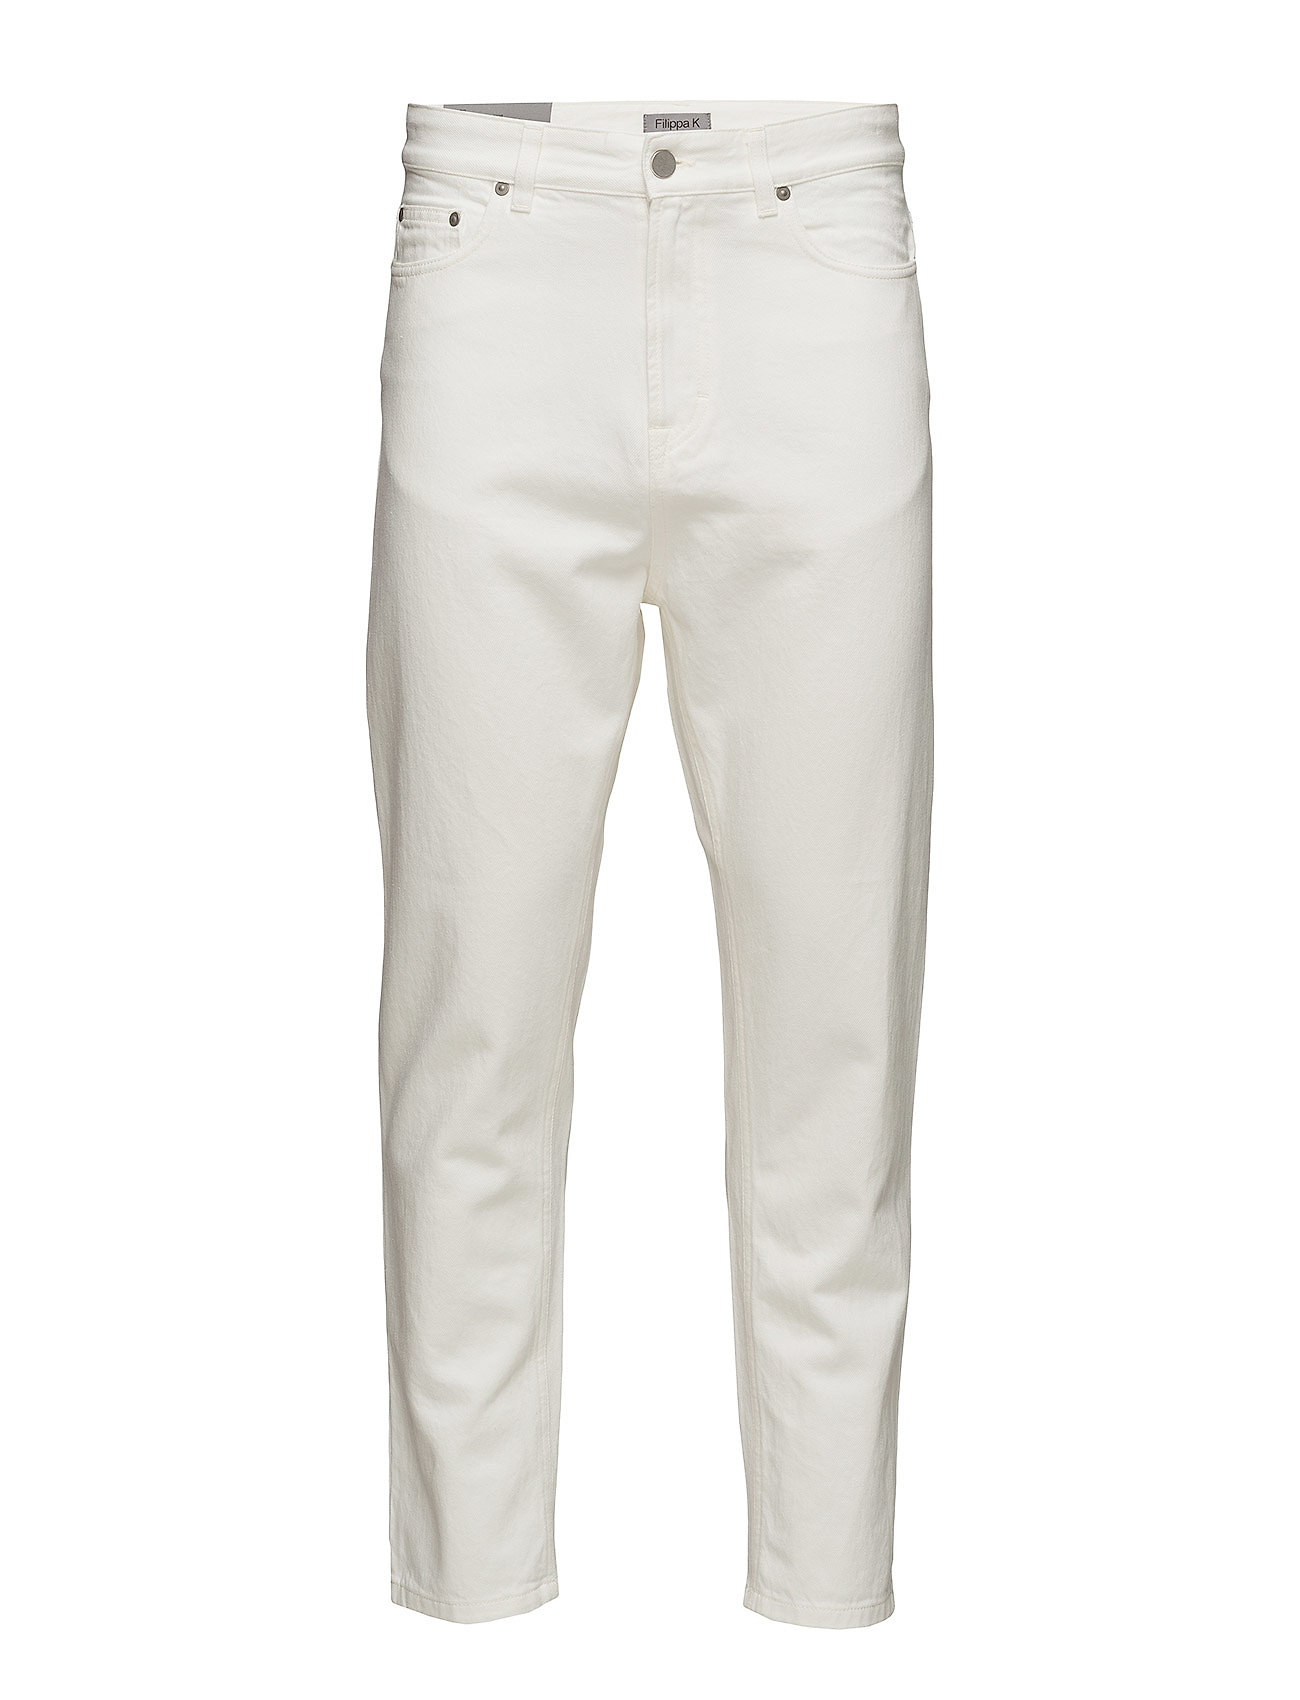 Image of M. Lawrence Jeans Jeans Relaxed Hvid Filippa K (3221497013)